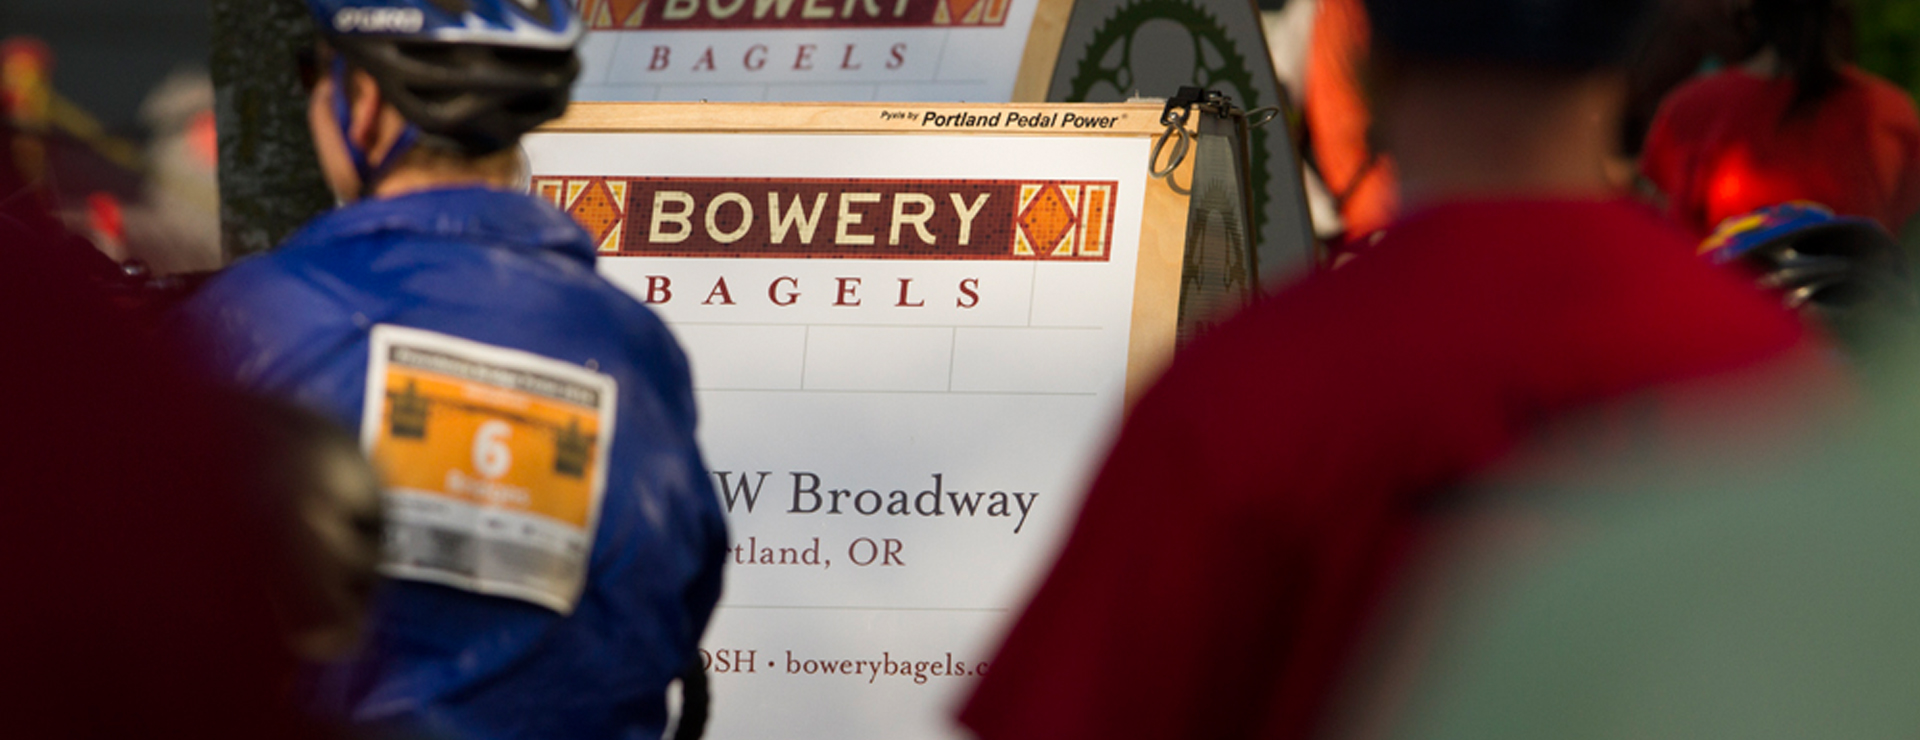 Bower Bagels advertising board